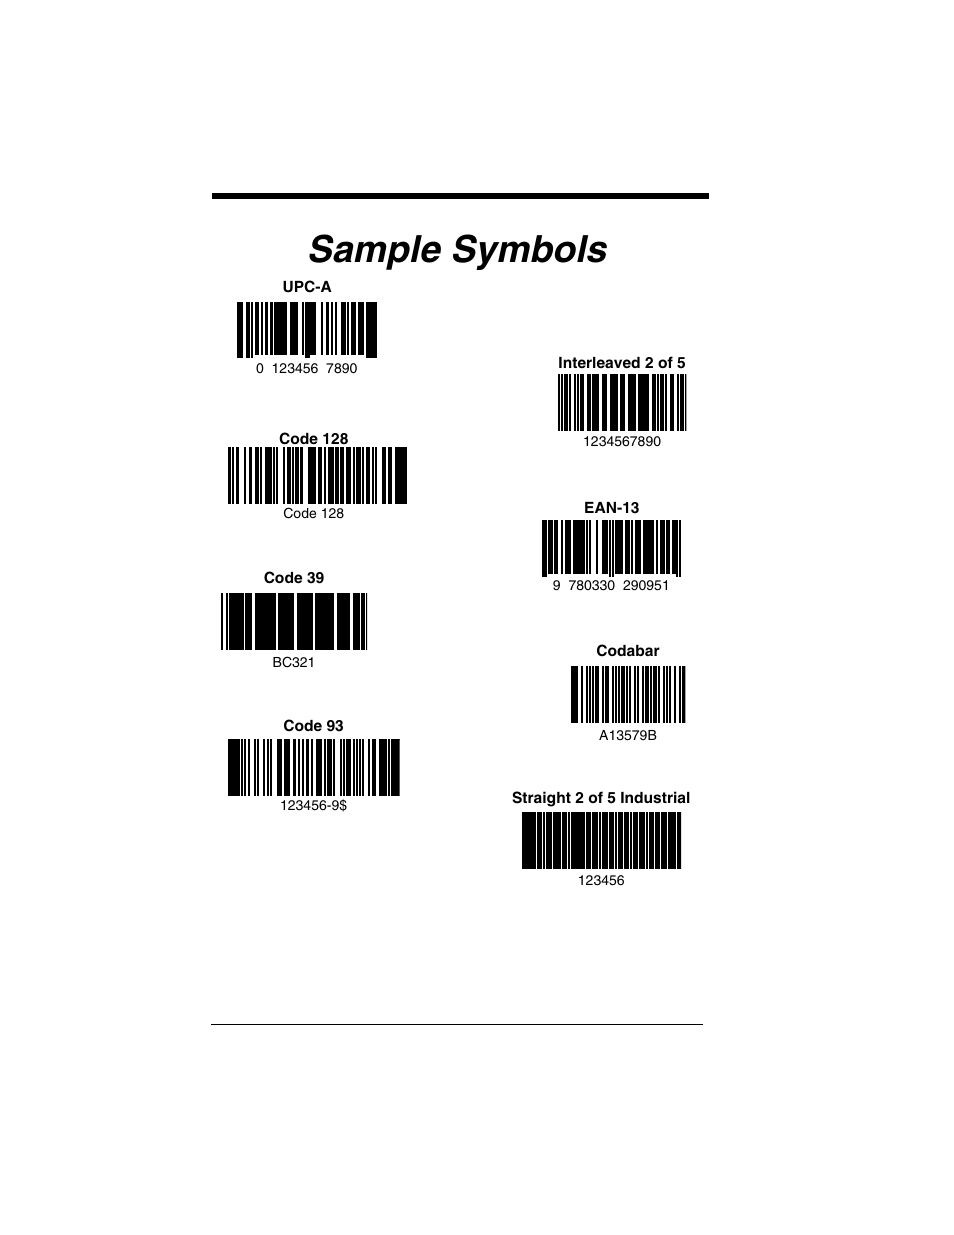 Sample symbols, Scanning a bar code from the, Sample